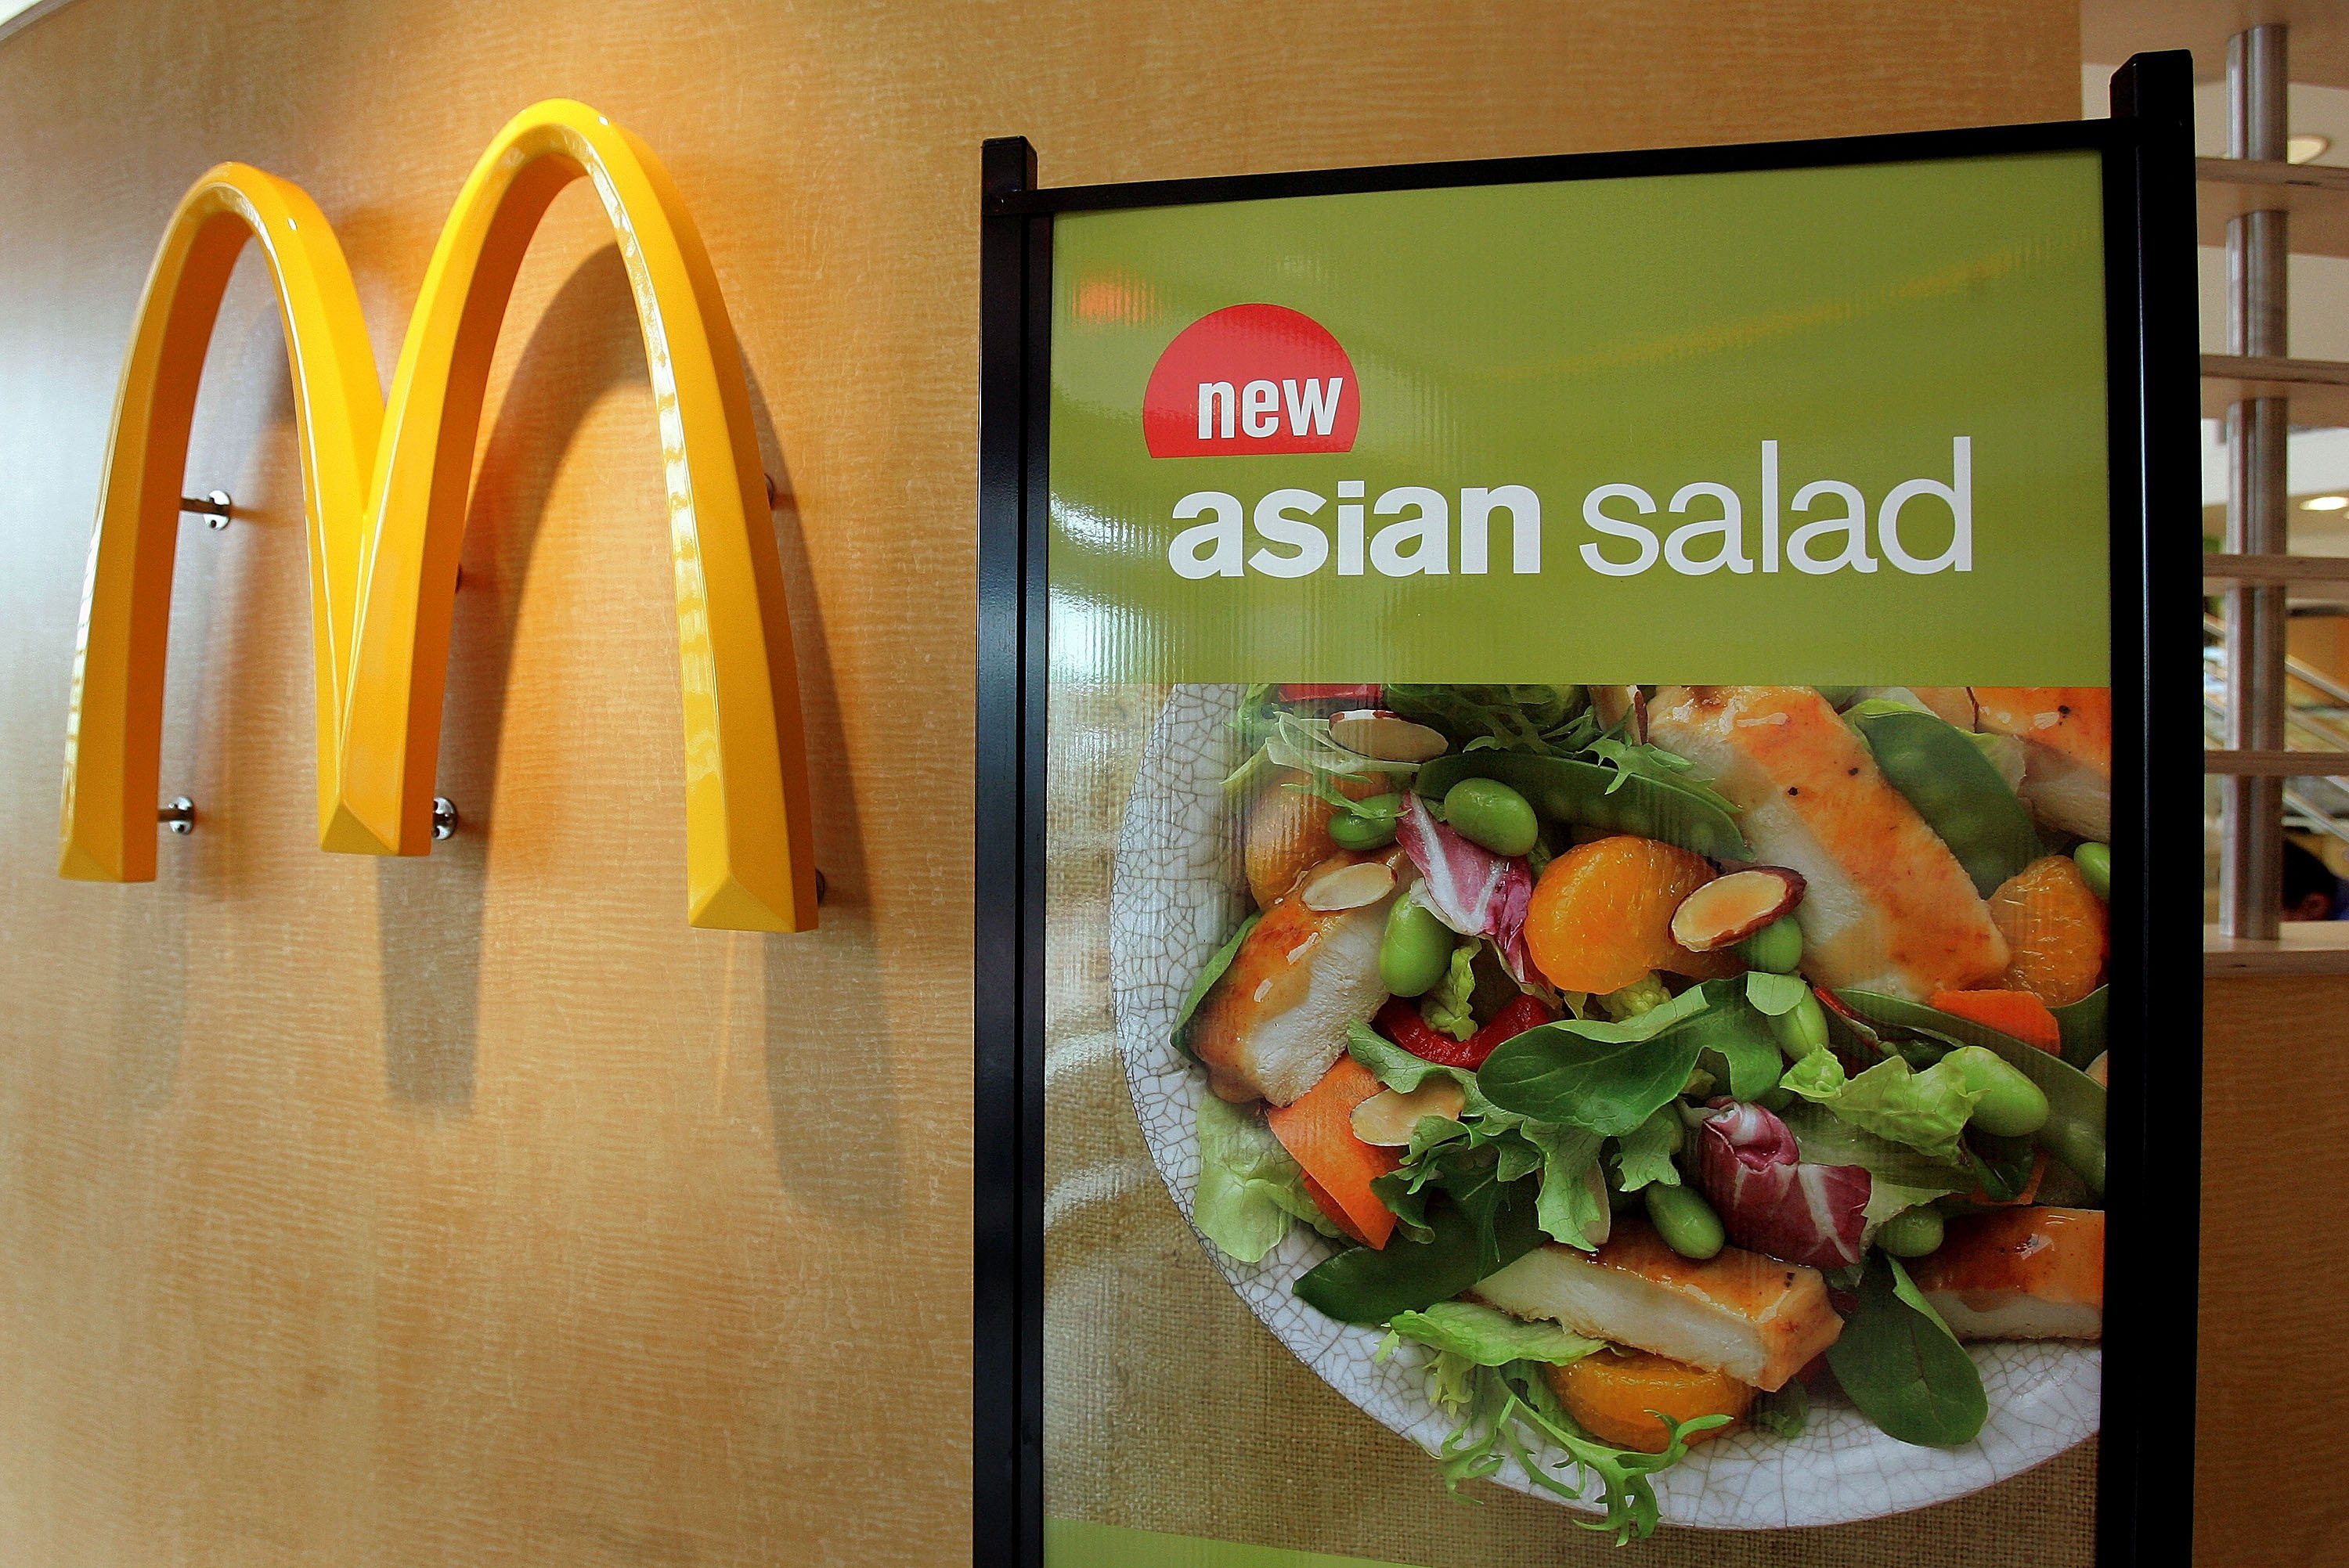 A display for McDonald's Asian Salad is displayed McDonald's restaurant in Oakbrook, Illinois, April 25, 2006. (Tim Boyle/Getty Images)